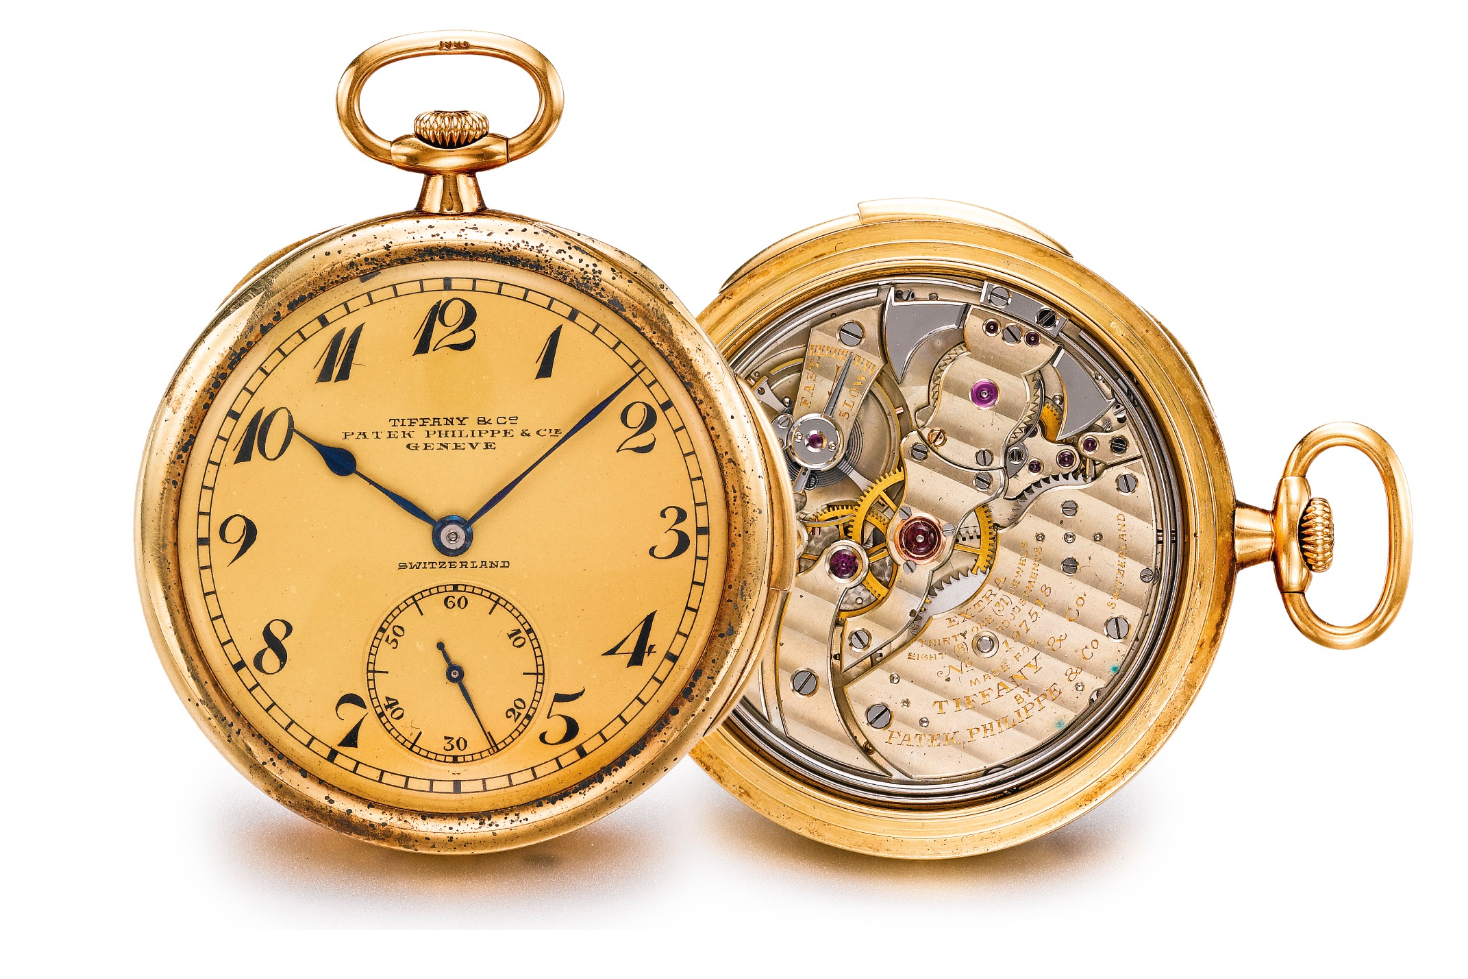 A Tiffany & Co. & Patek Philippe double-signed minute repeating pocket watch. Photo courtesy of Sotheby's.